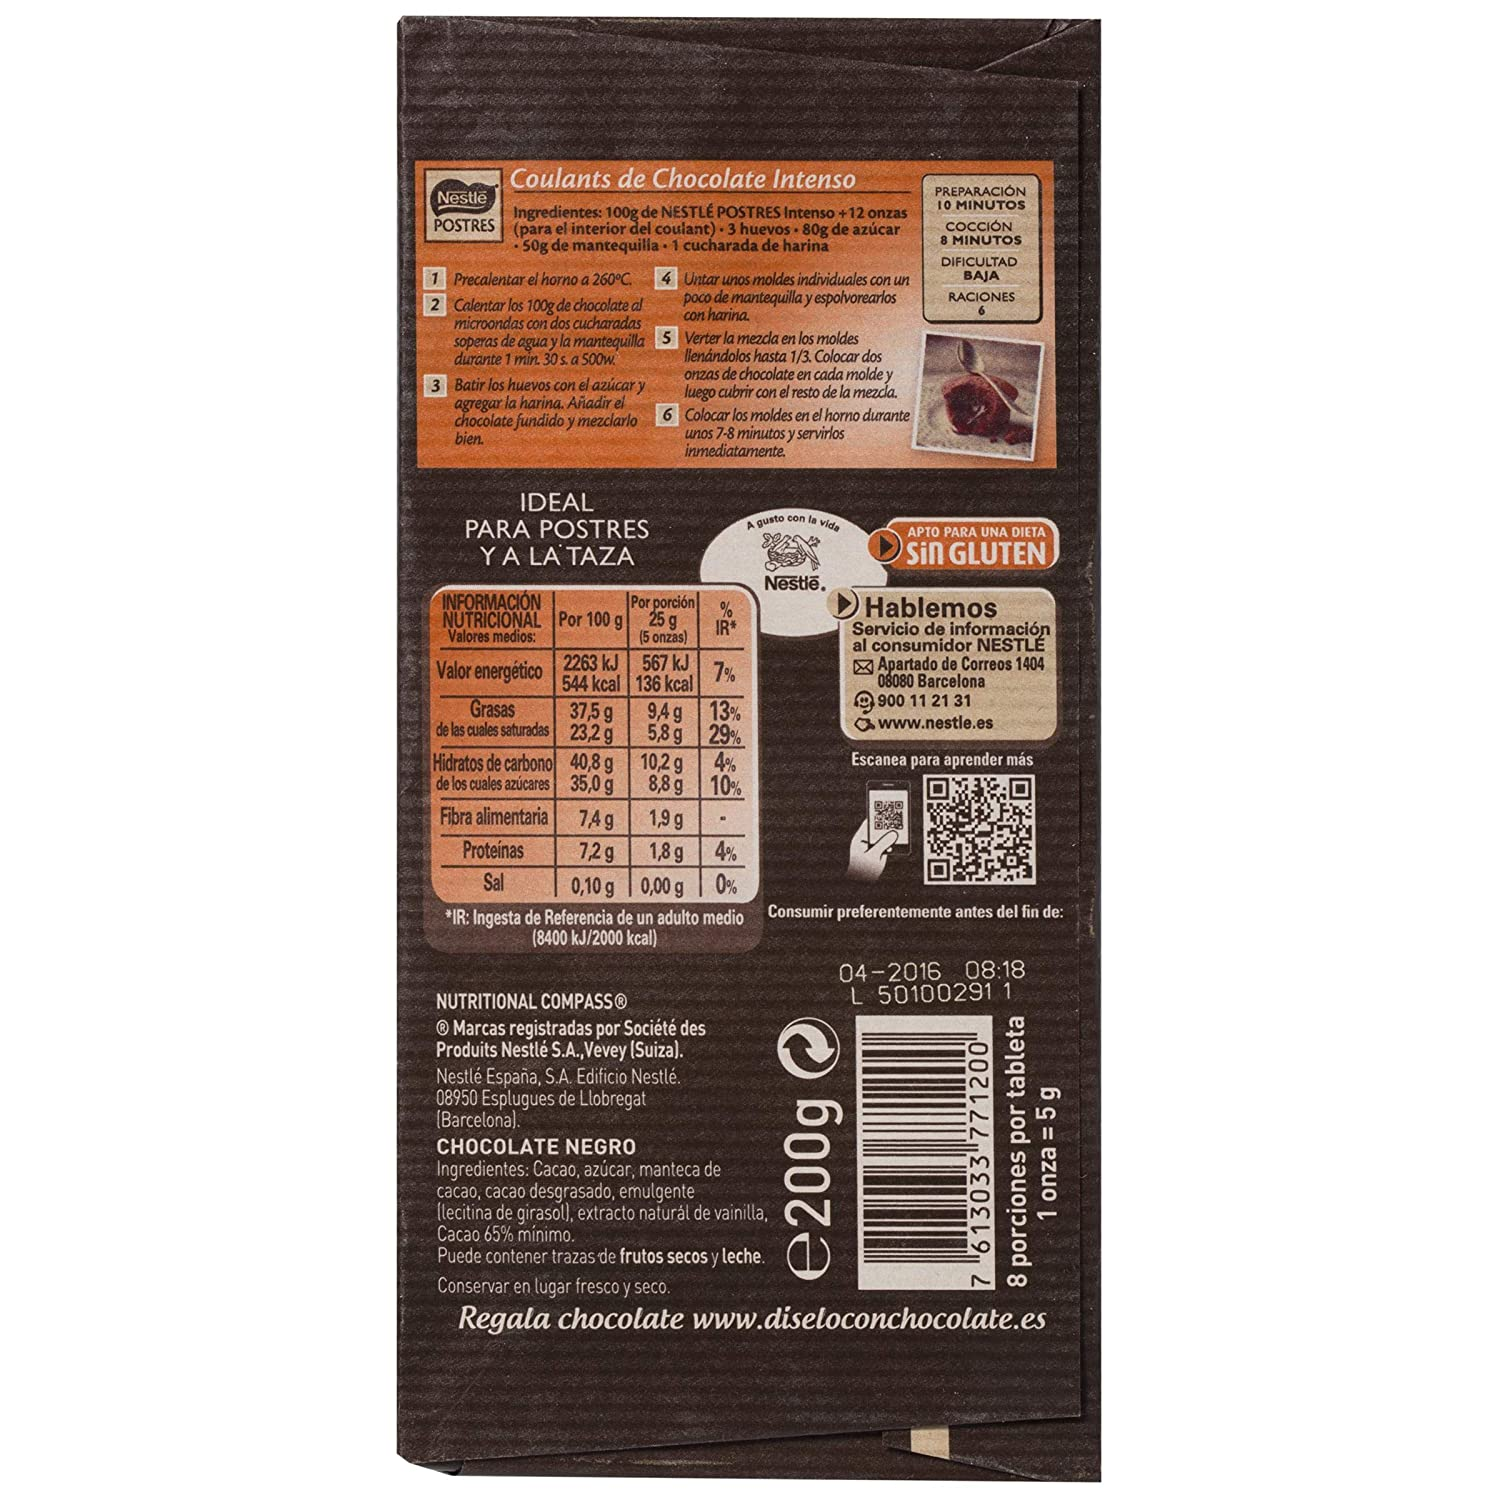 Nestlé Postres Tableta De Chocolate Intenso - 200 g: Amazon.es: Amazon Pantry